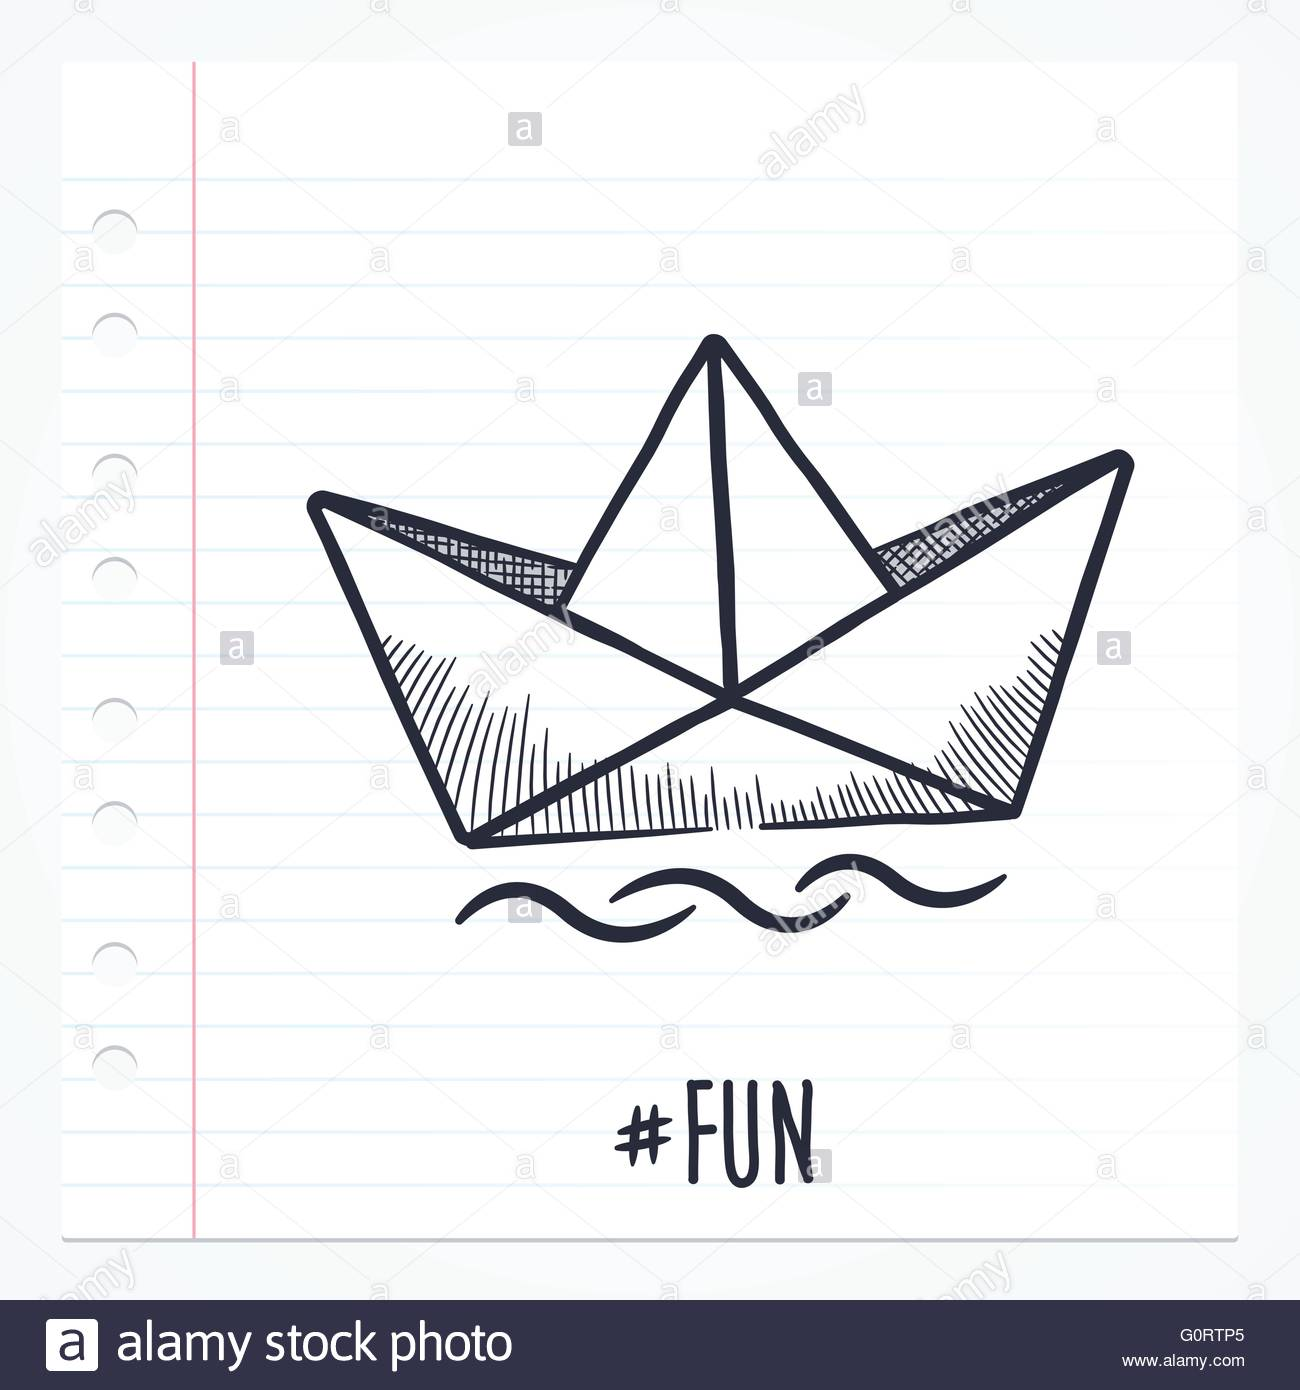 Vector doodle paper ship boat illustration with color, drawn on lined note paper. - Stock Image